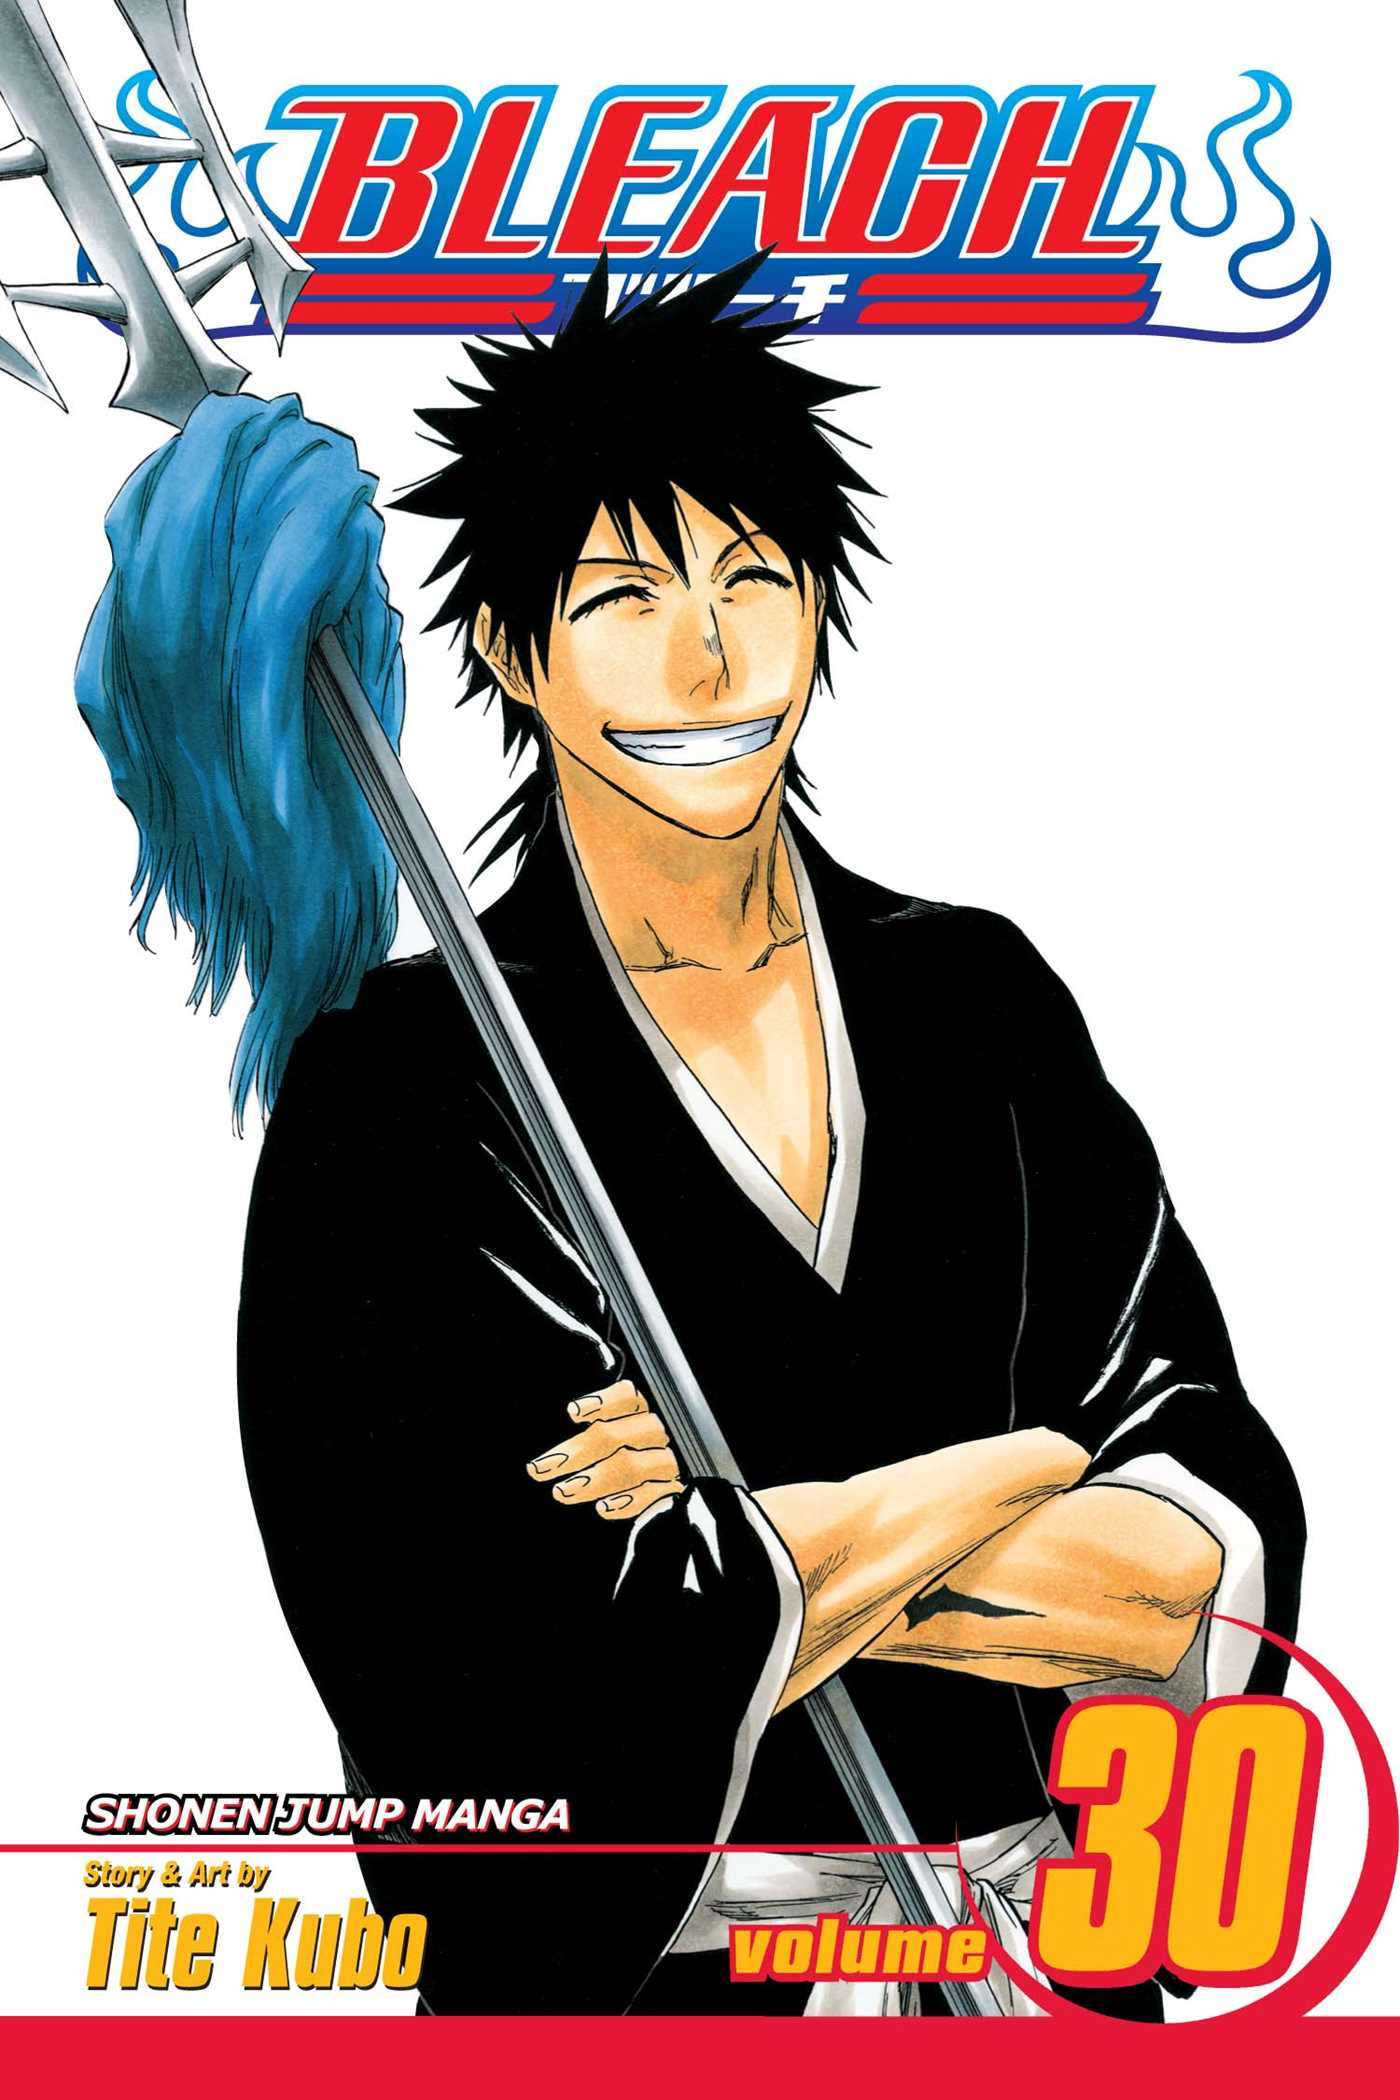 Bleach Vol 30 9781421523880 Hr